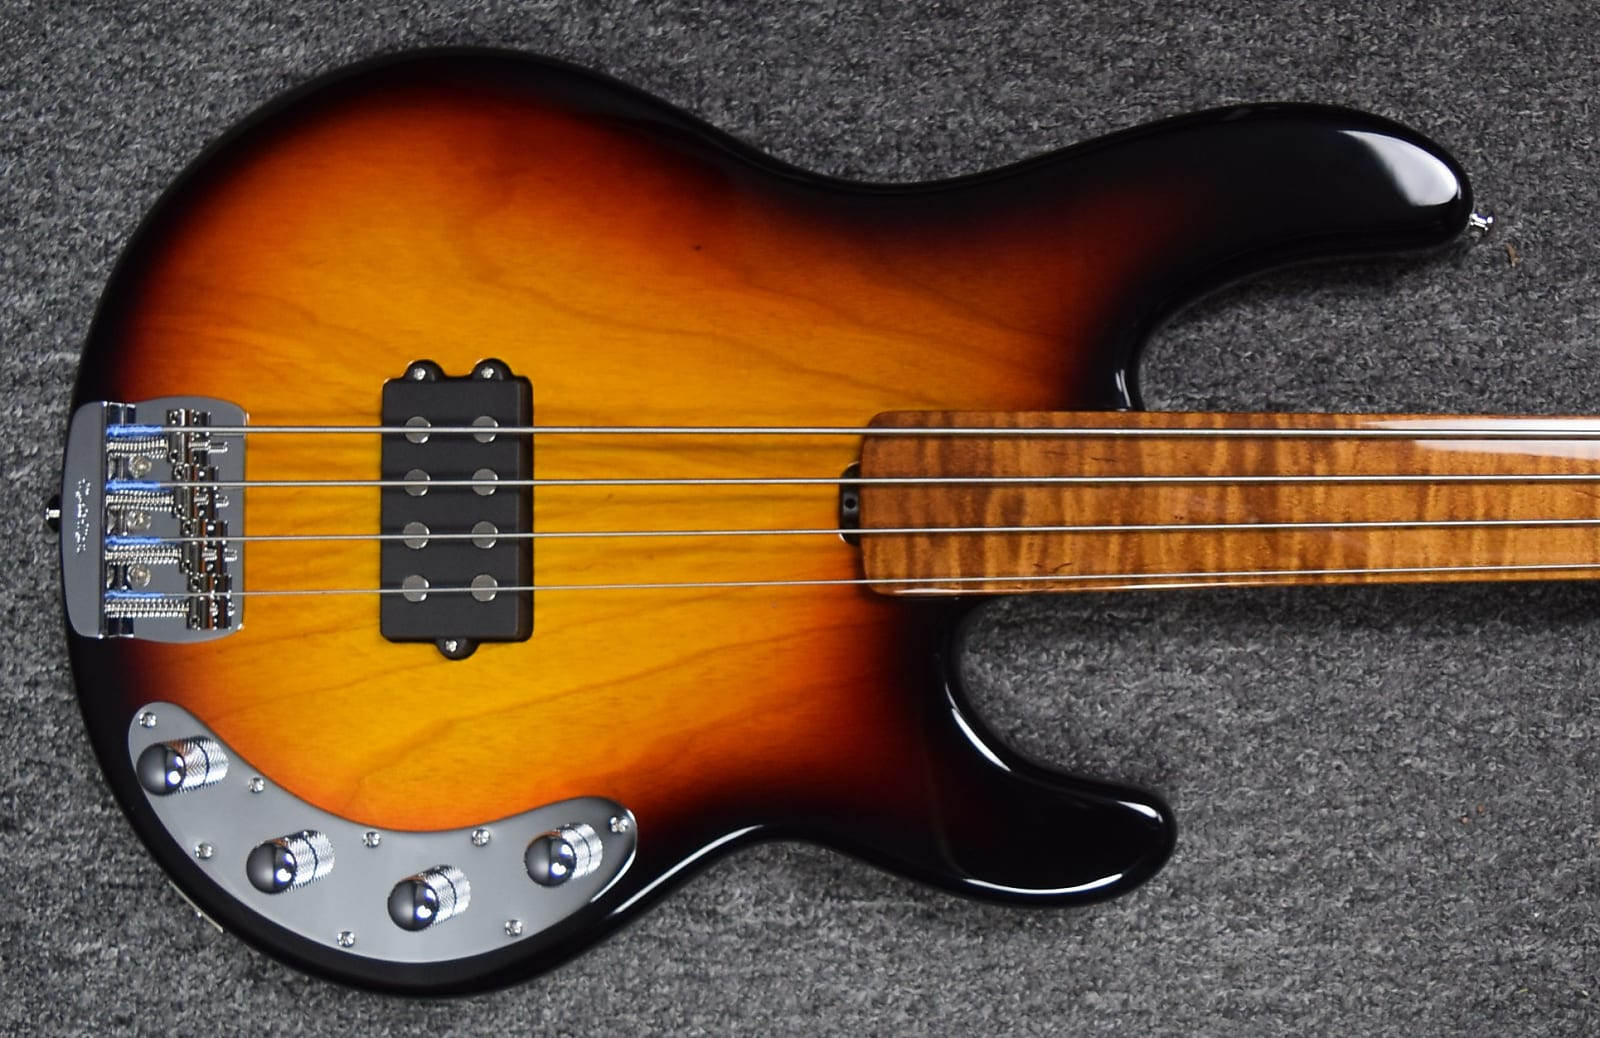 Ernie Ball Music Man BFR StingRay 4 FRETLESS, Sierra Vintage Burst Roasted & Figured Maple Neck / FB